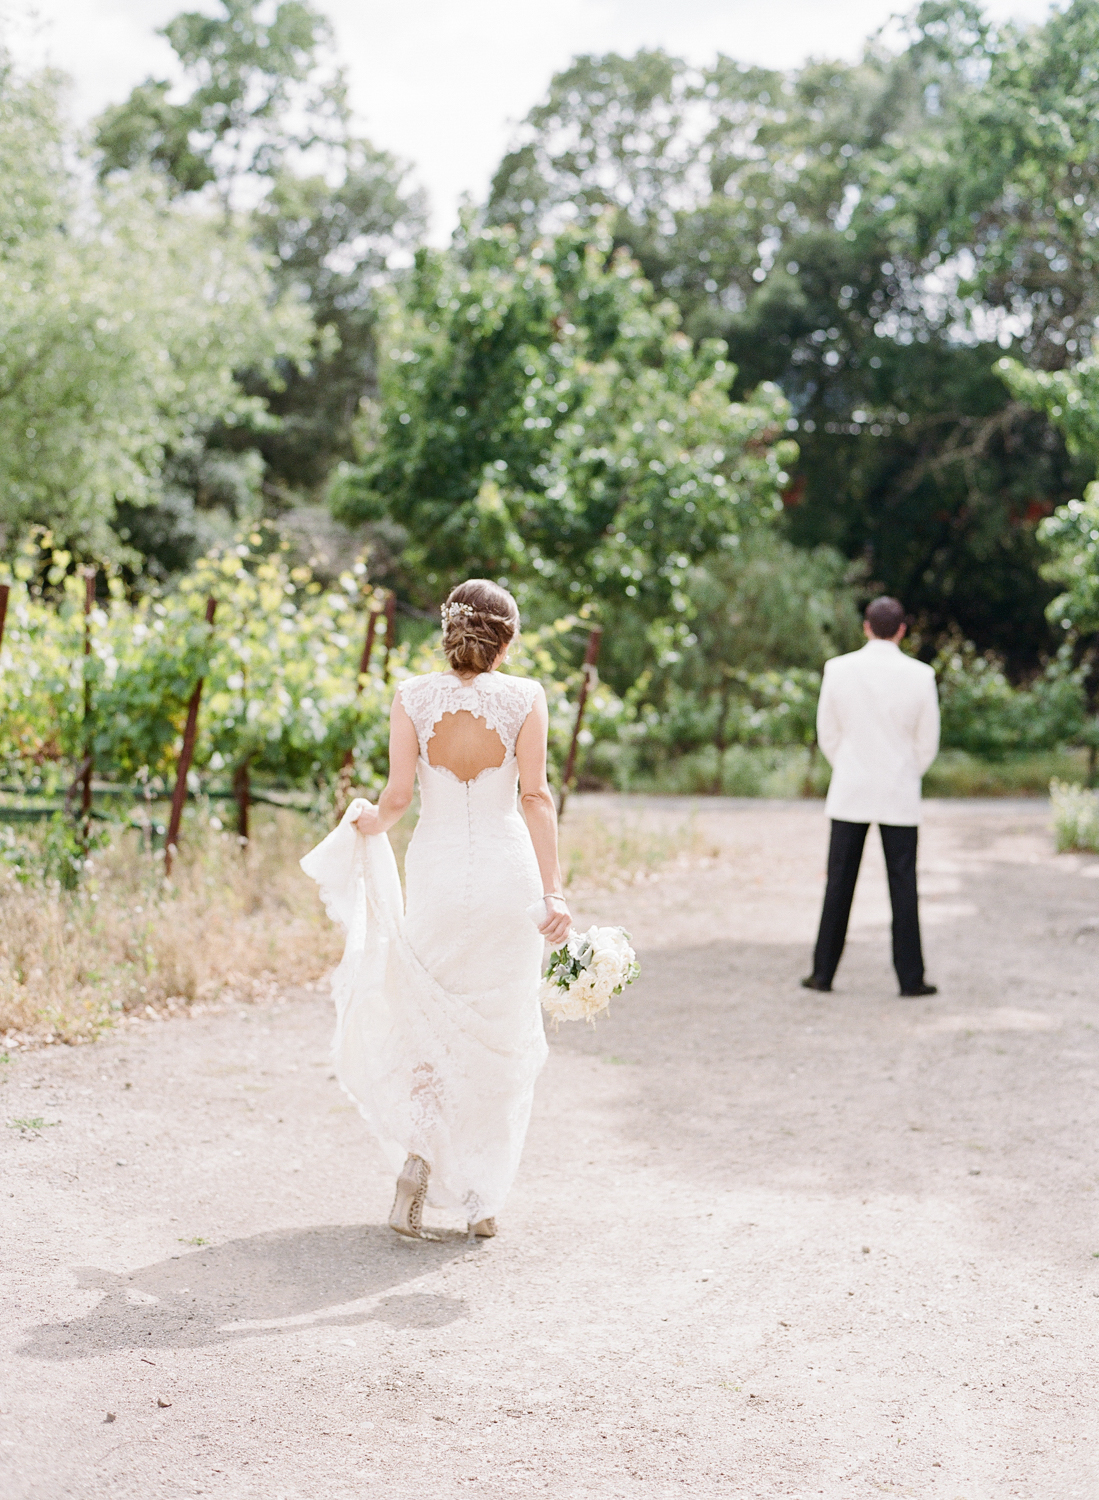 Bride walking up to the groom for the first look in Yountville vineyards outside Vintage Estates; Sylvie Gil Photography